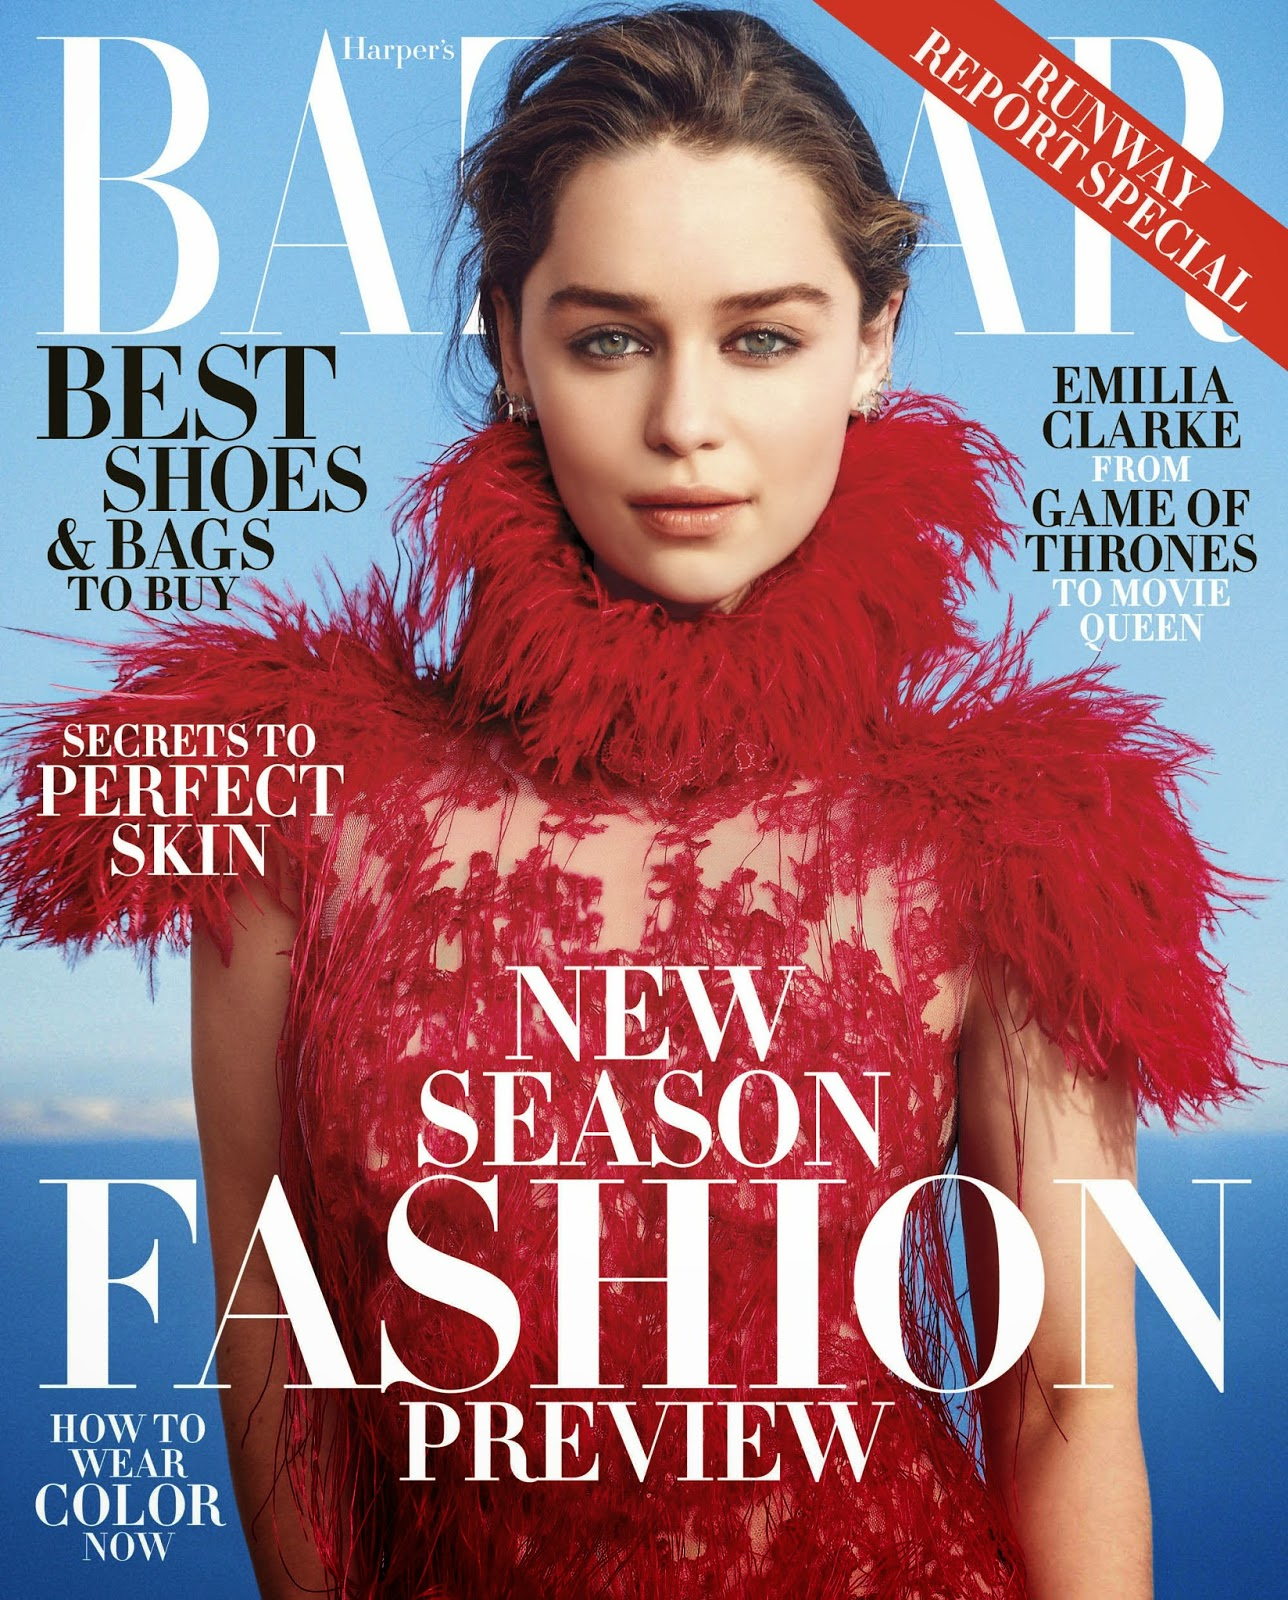 Actress @ Emilia Clarke - Harper's Bazaar, June 2015